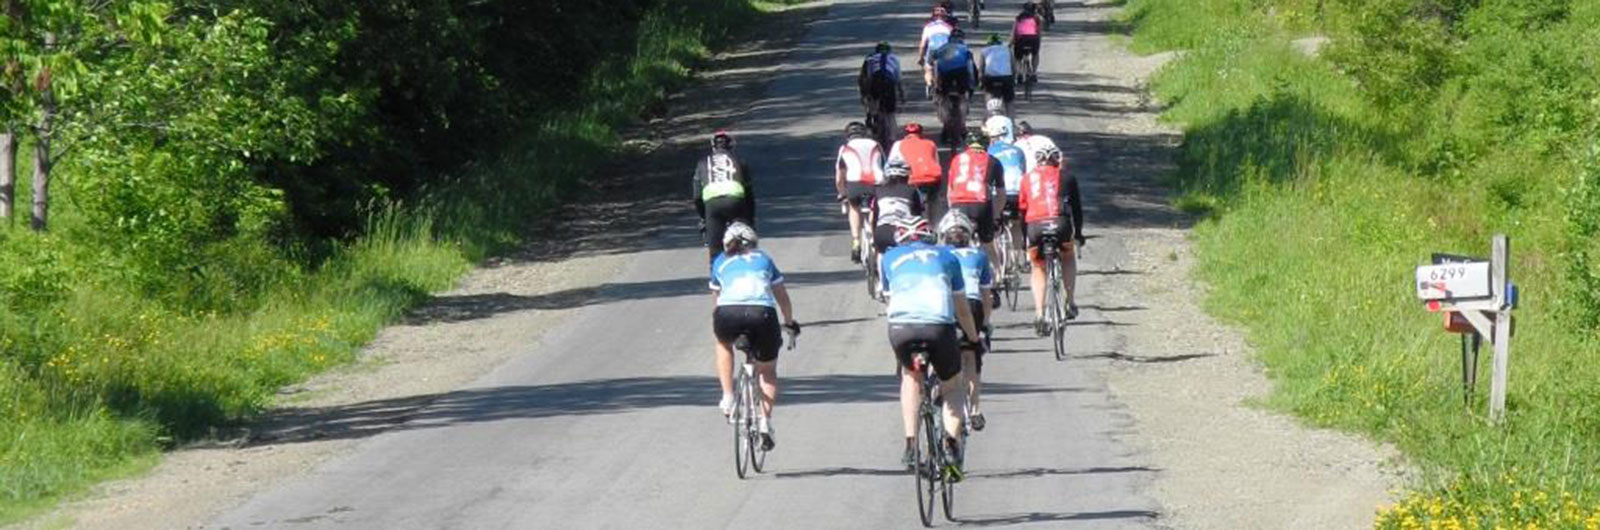 Road cycling in the Ellicottville countryside